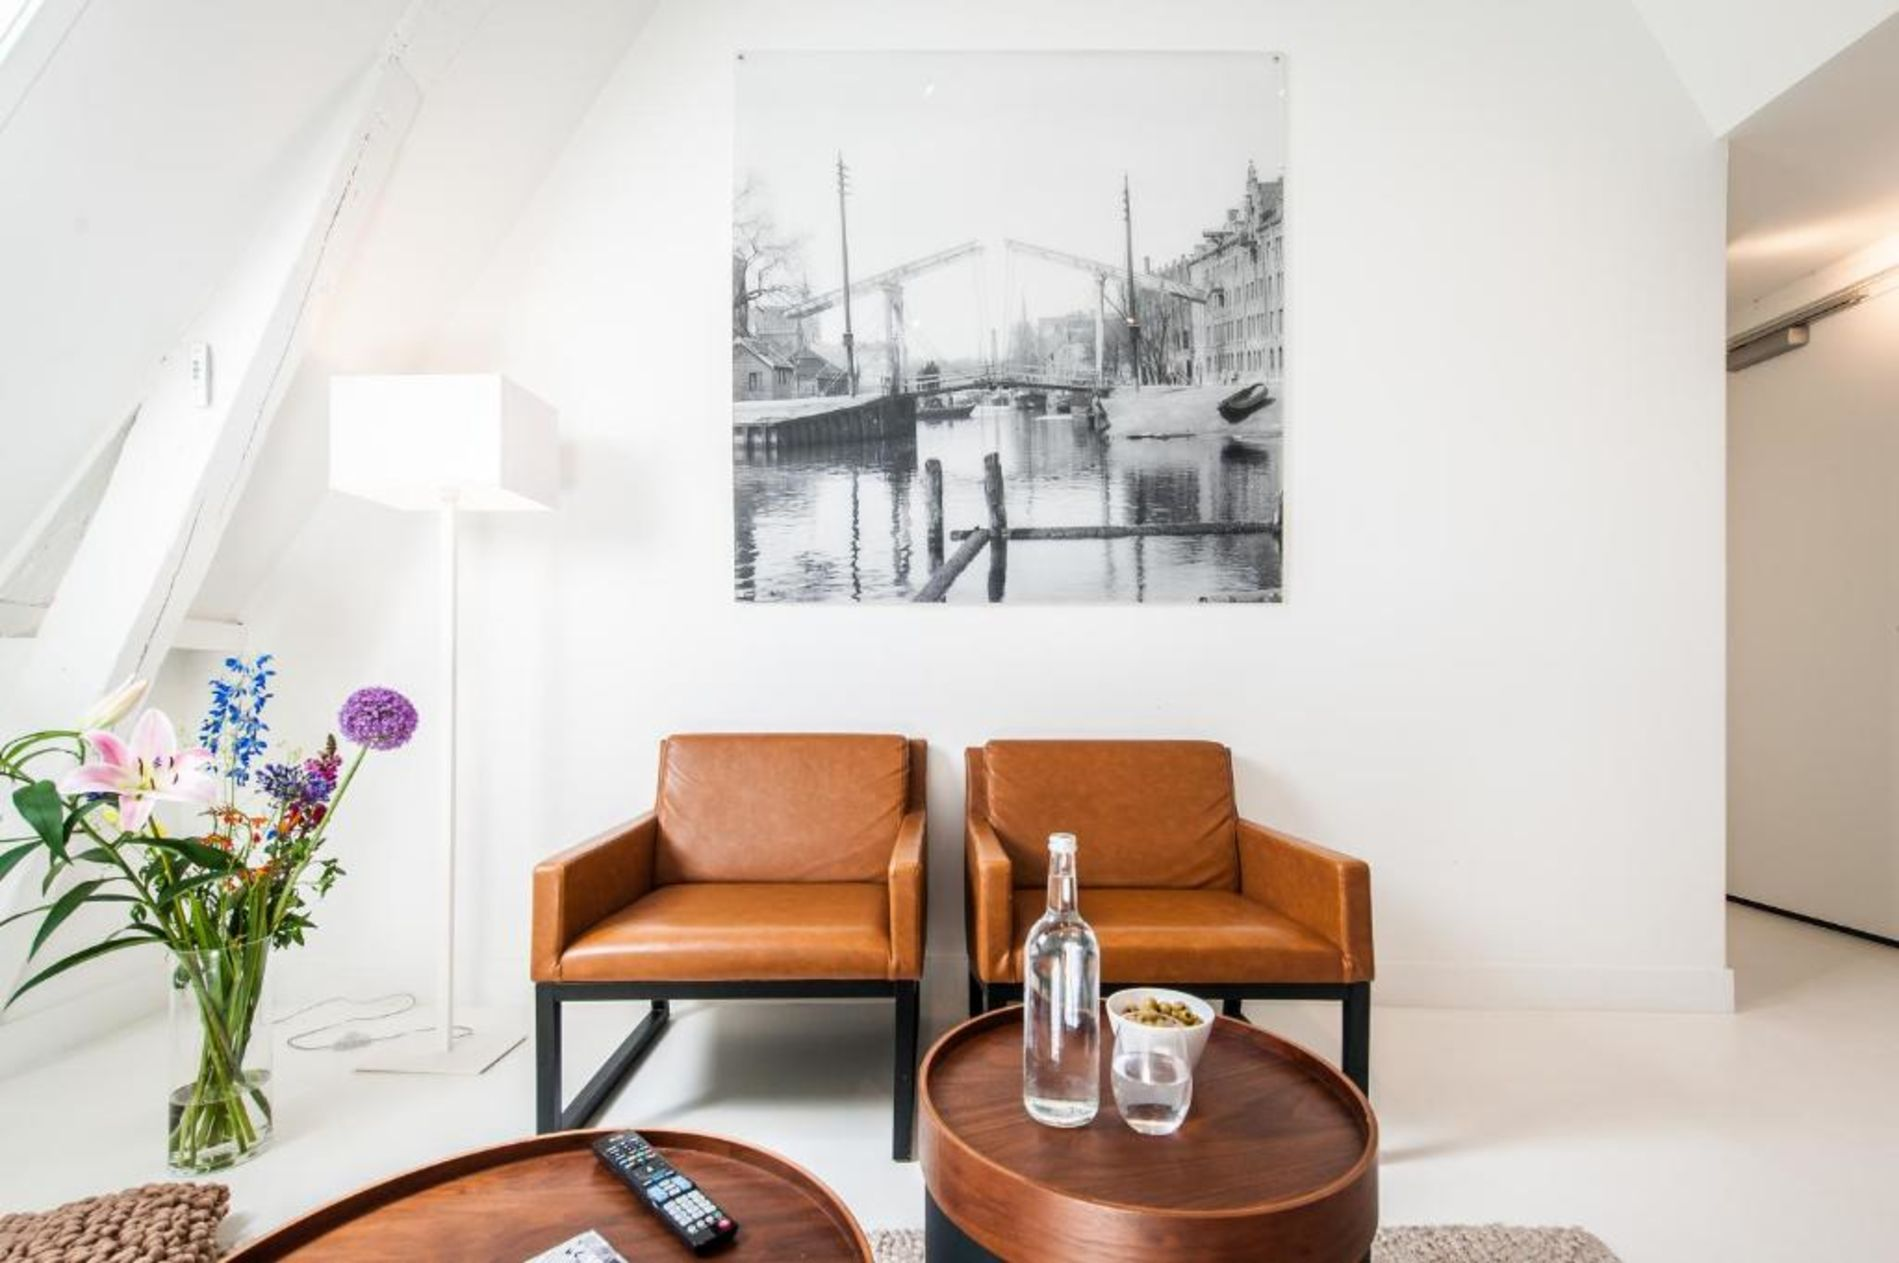 Serviced apartment in Amsterdam suitable for long stays